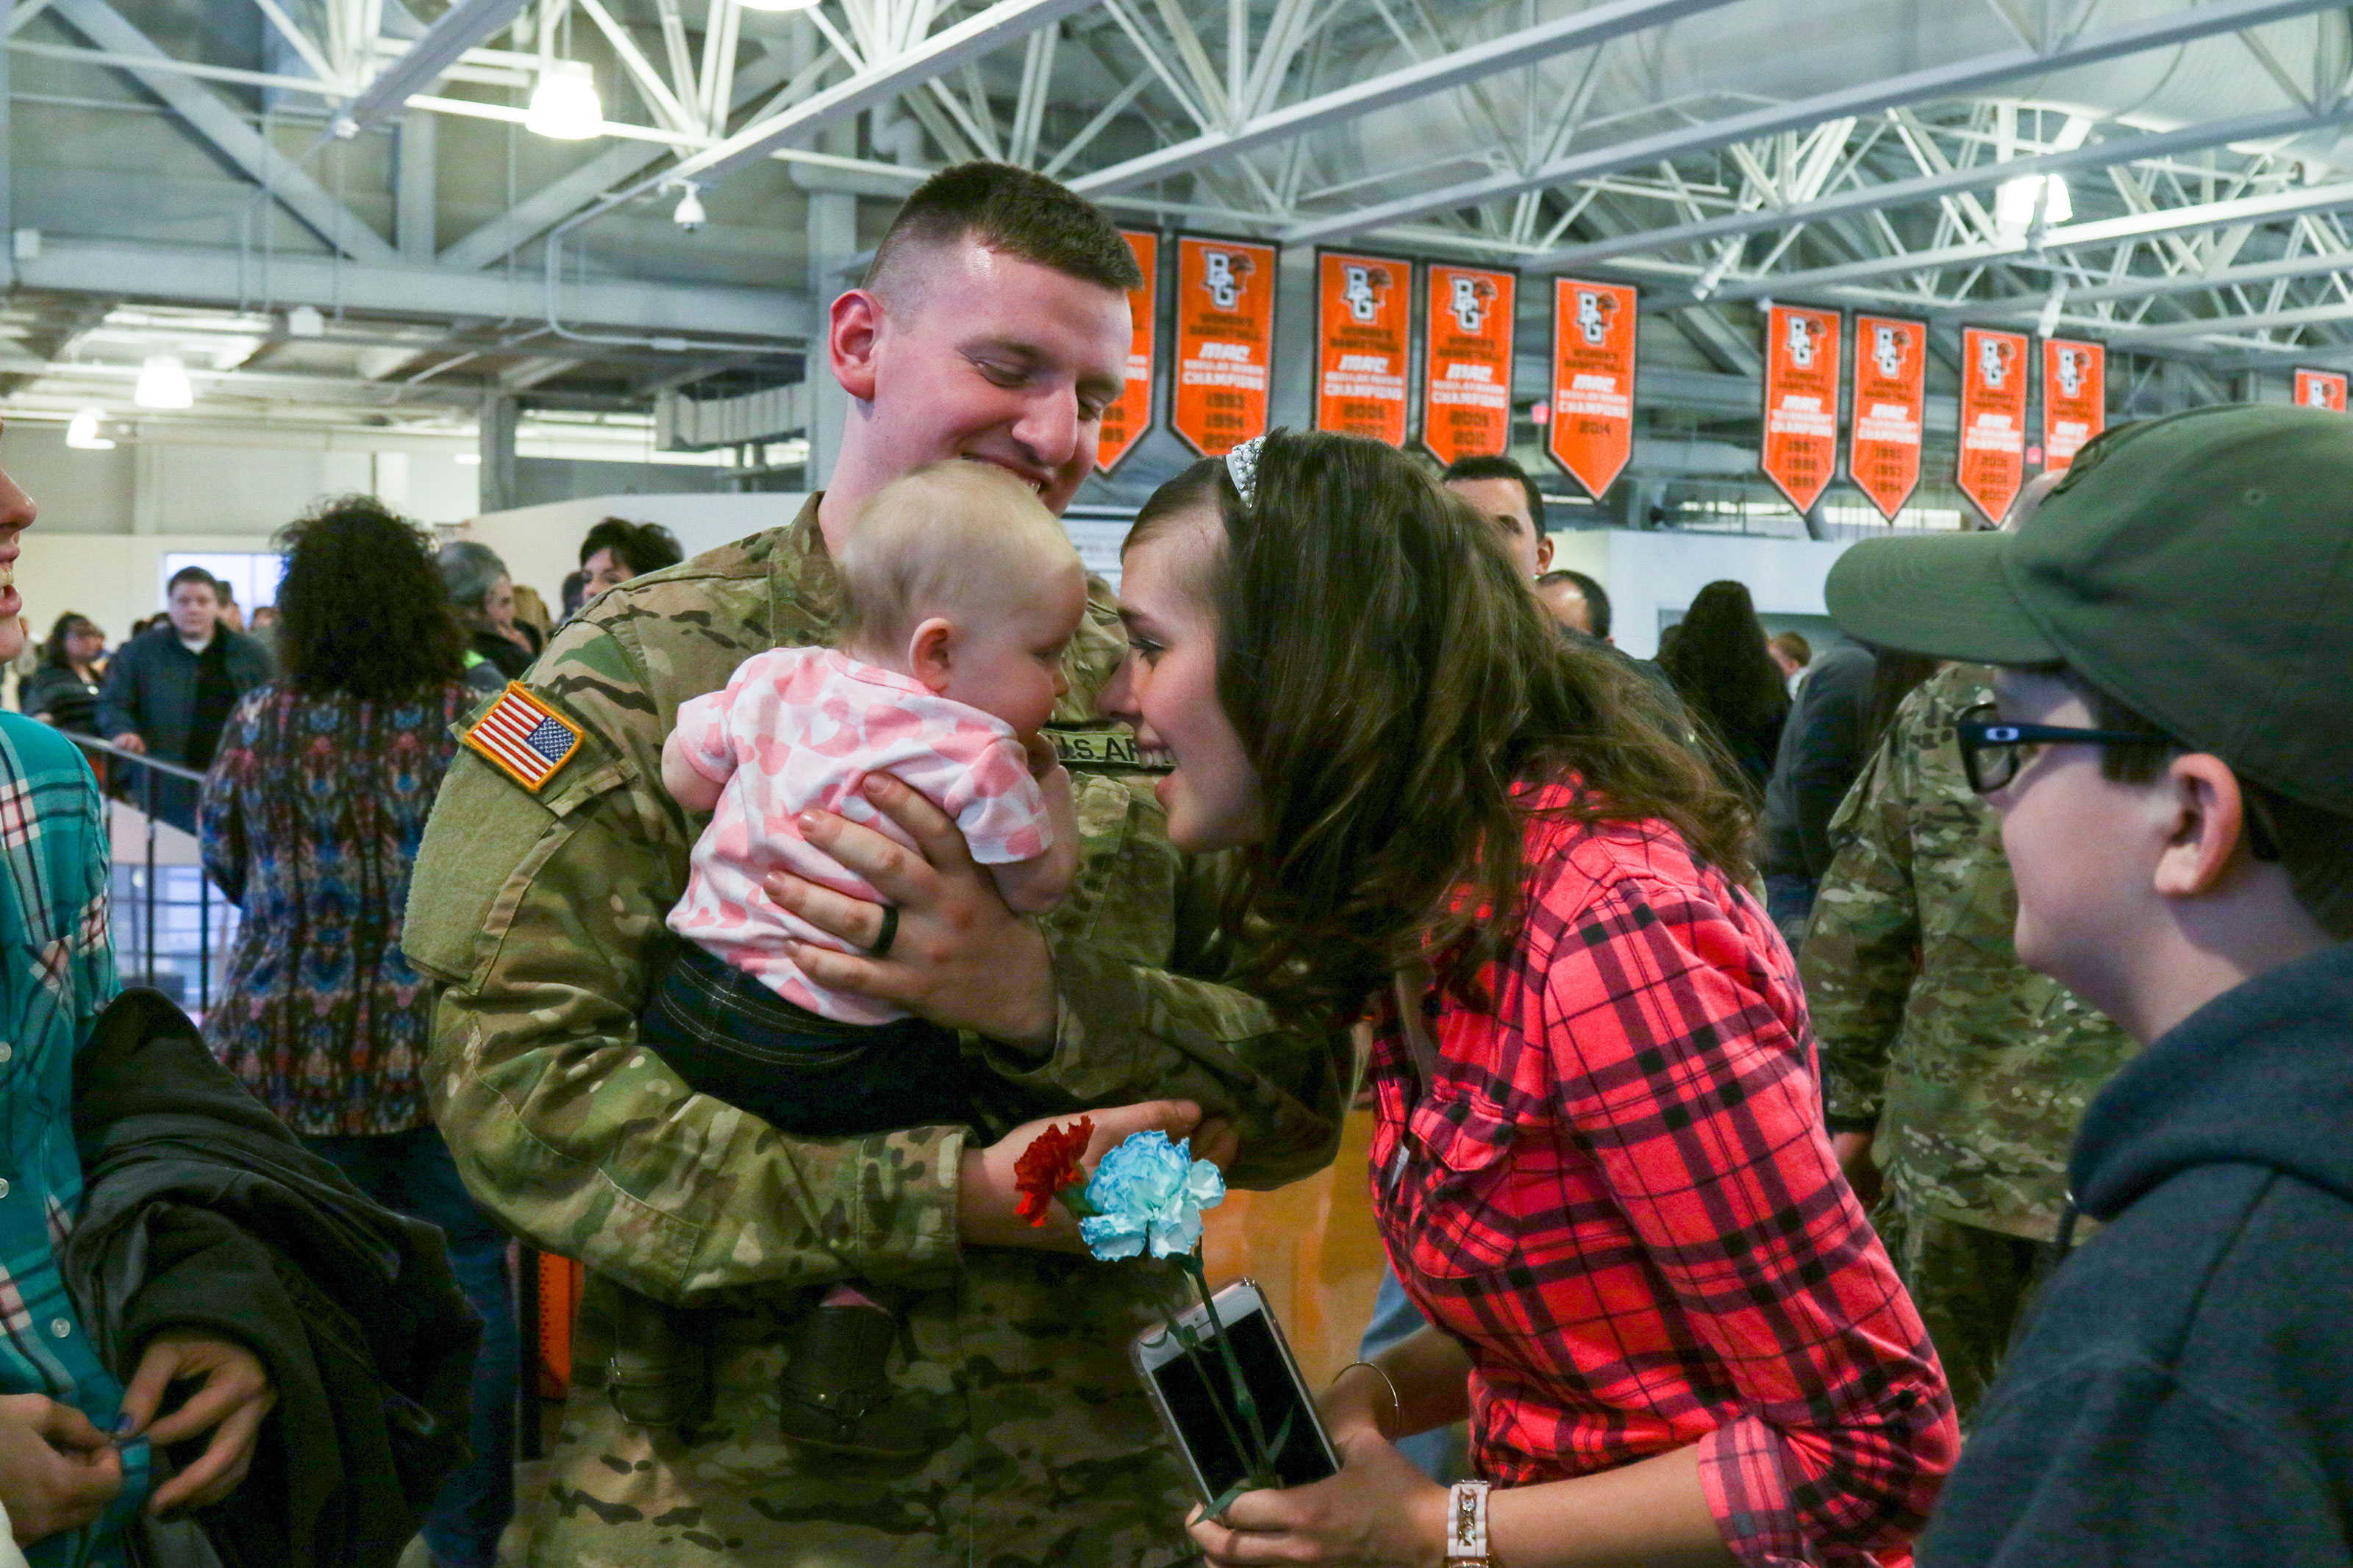 A  Soldier assigned to the 1st Battalion, 148th Infantry Regiment spends time with his Family after the unit's call to duty ceremony Jan. 11, 2017, in Bowling Green, Ohio.  (Ohio National Guard/ Michael Carden)